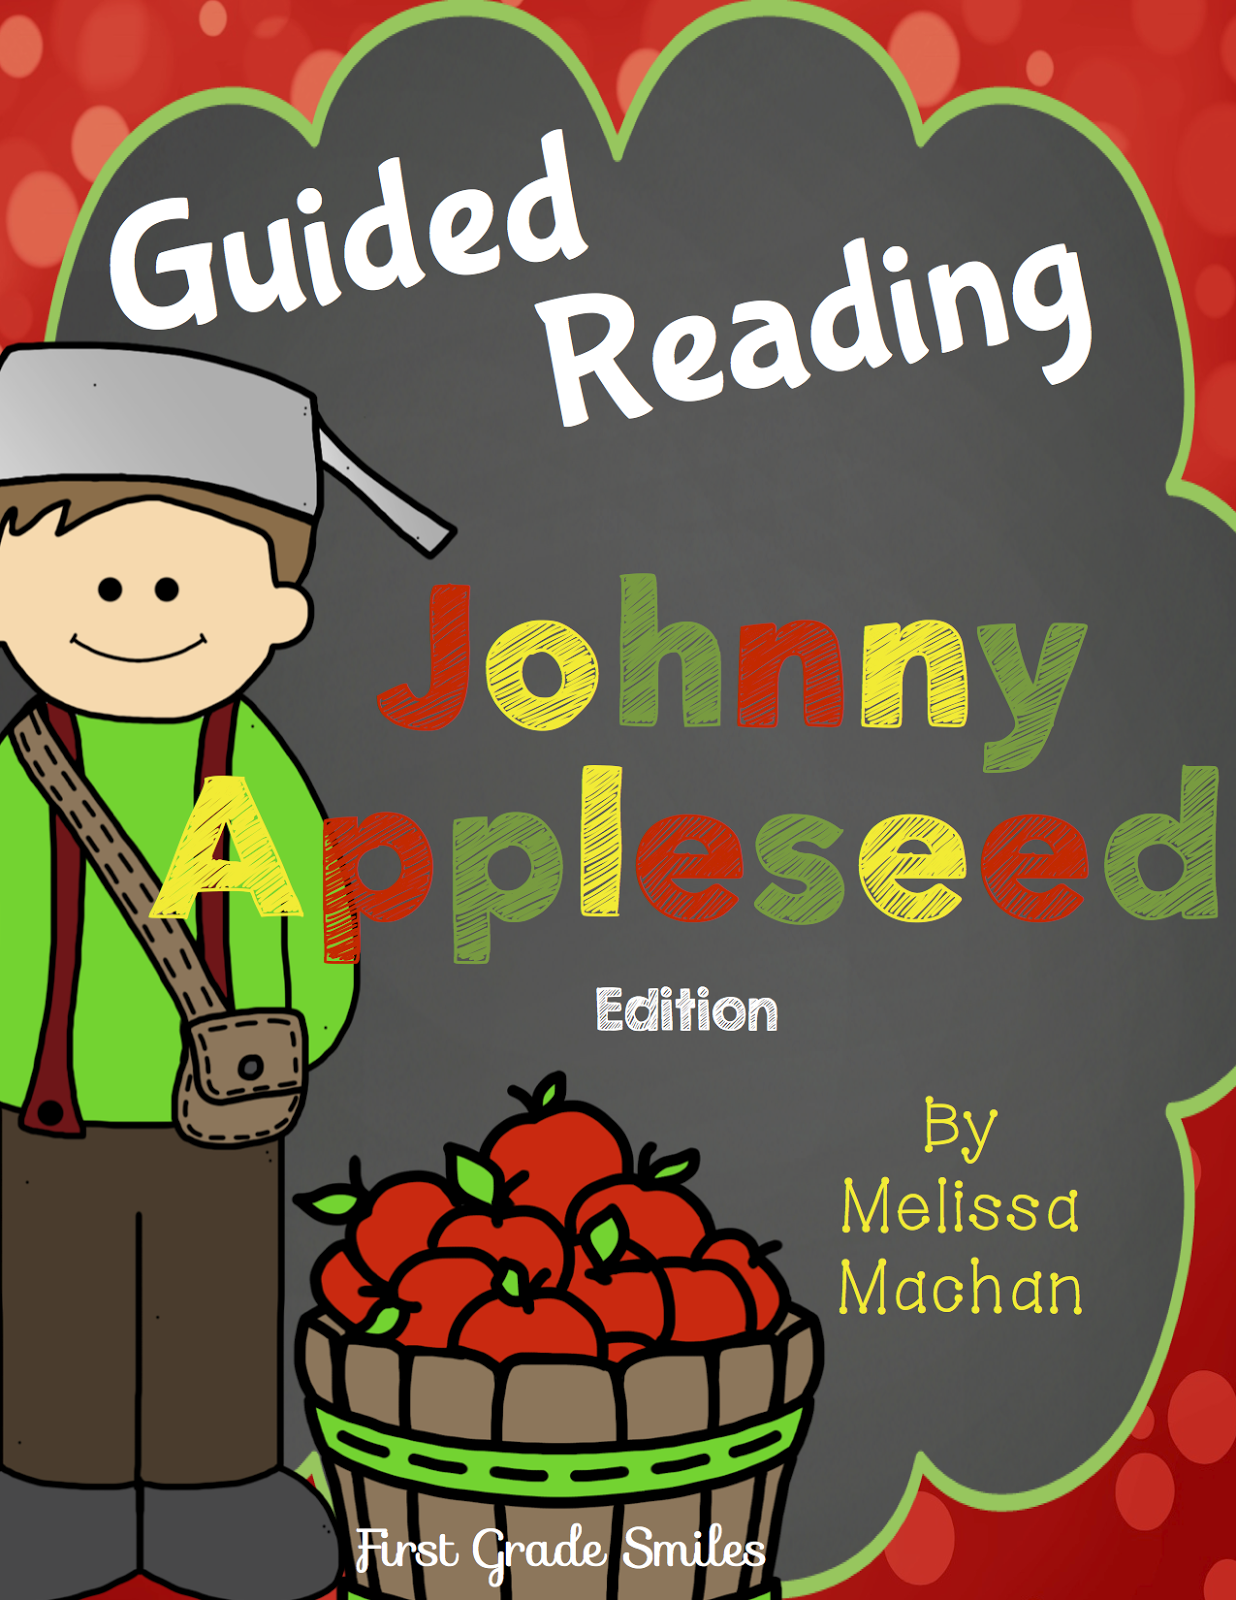 Guided Reading Pack About Johnny Appleseed